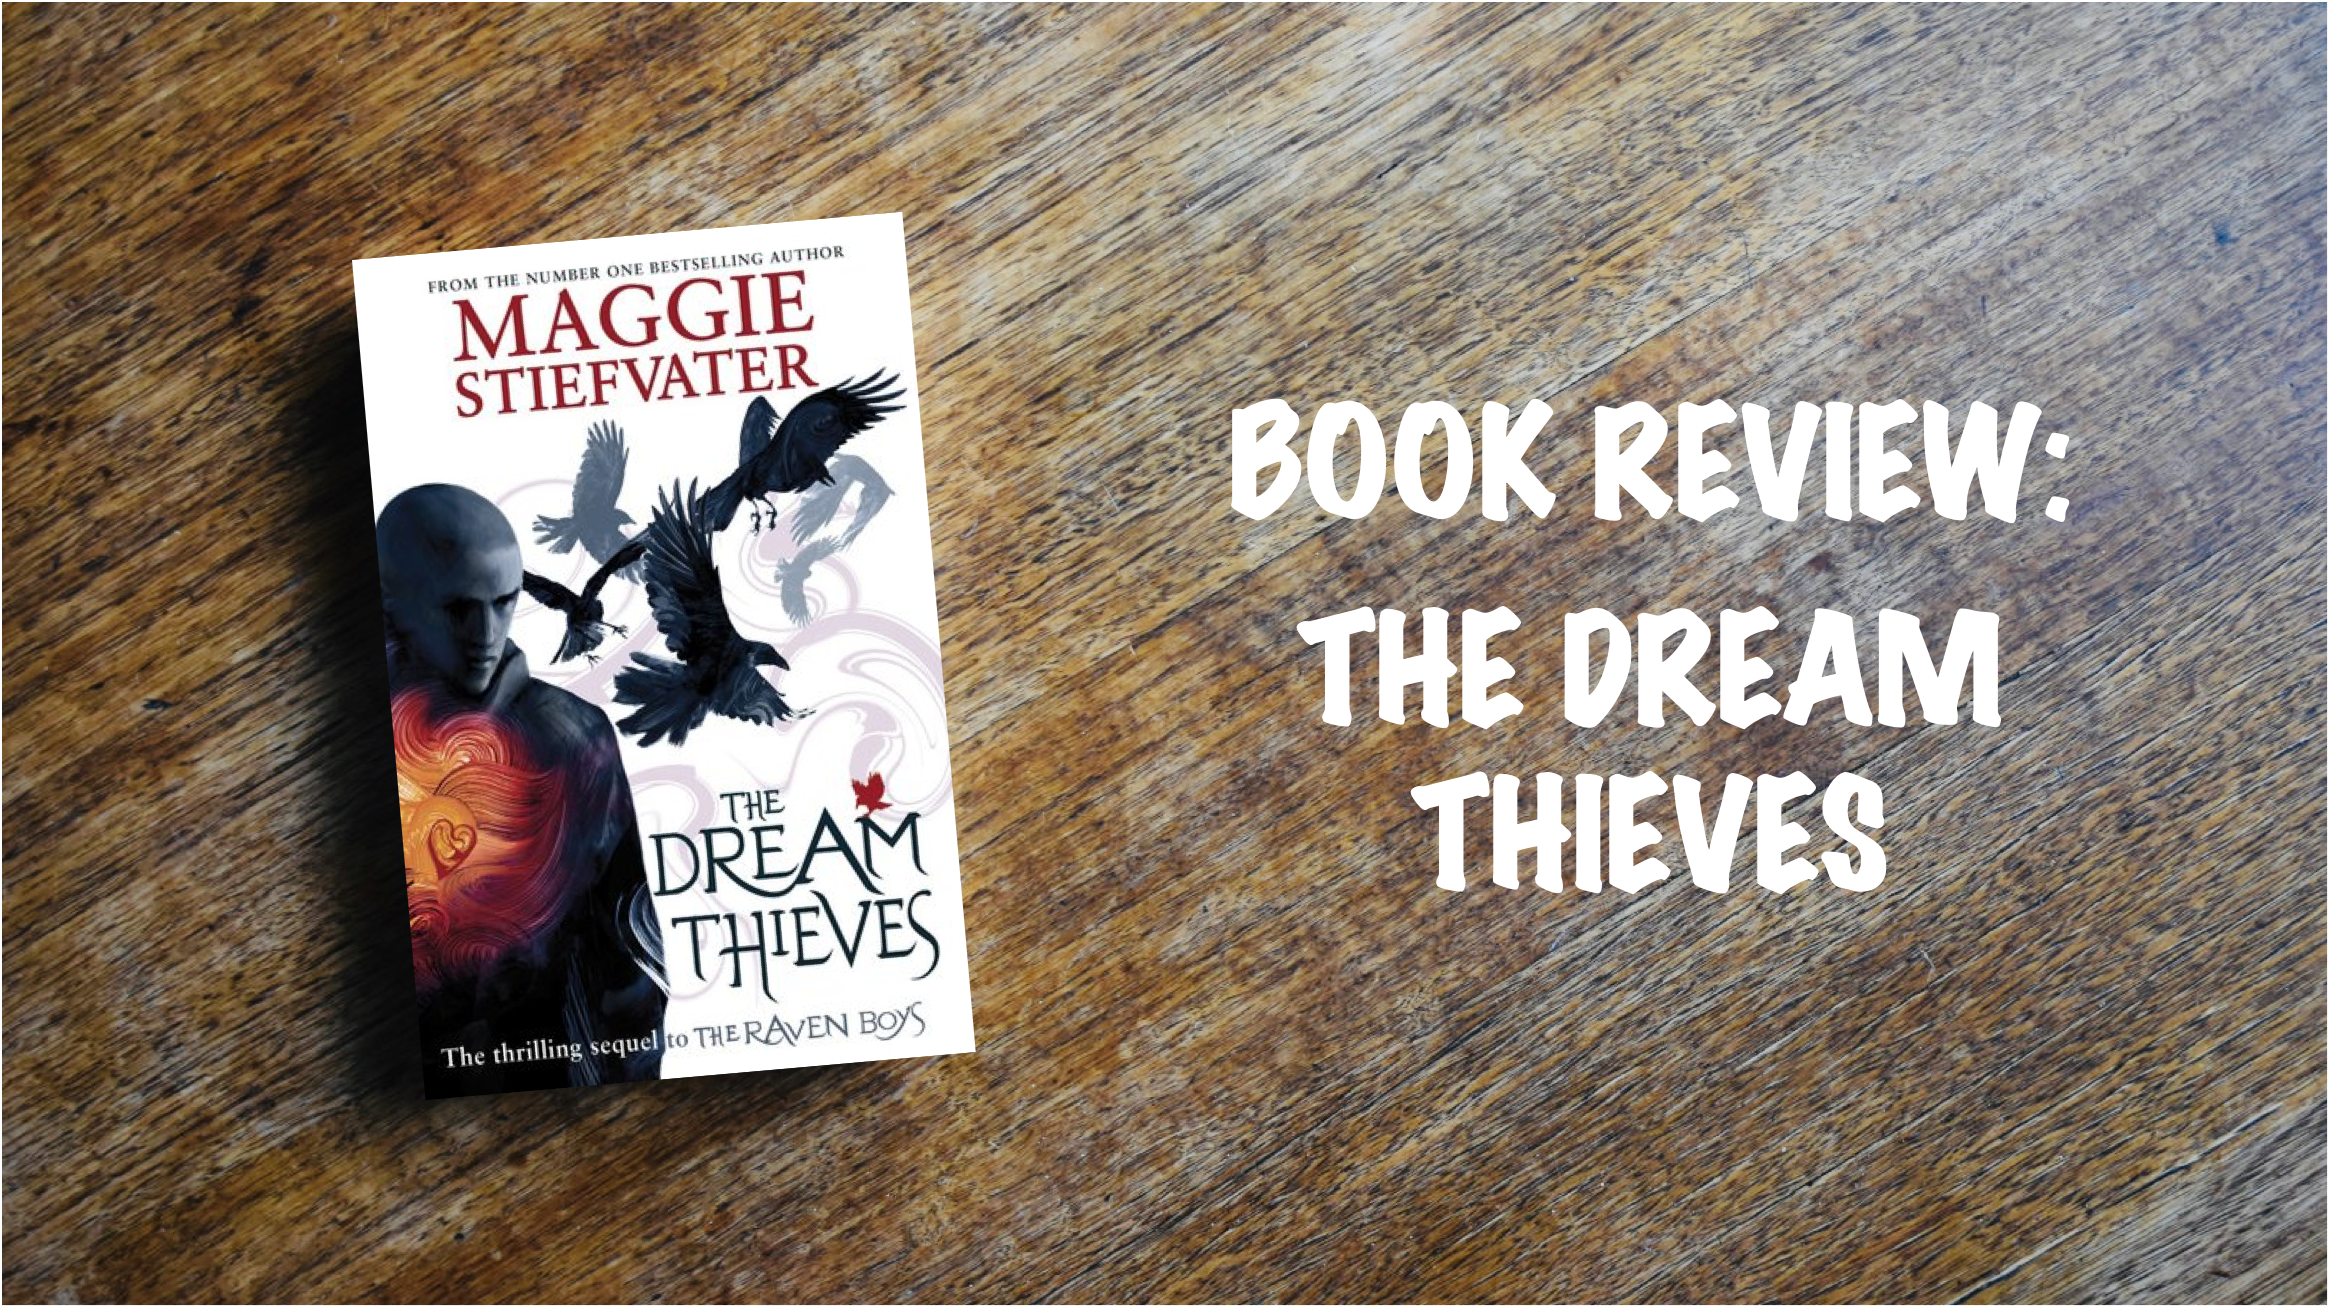 Book Review Banner: The Dream Thieves